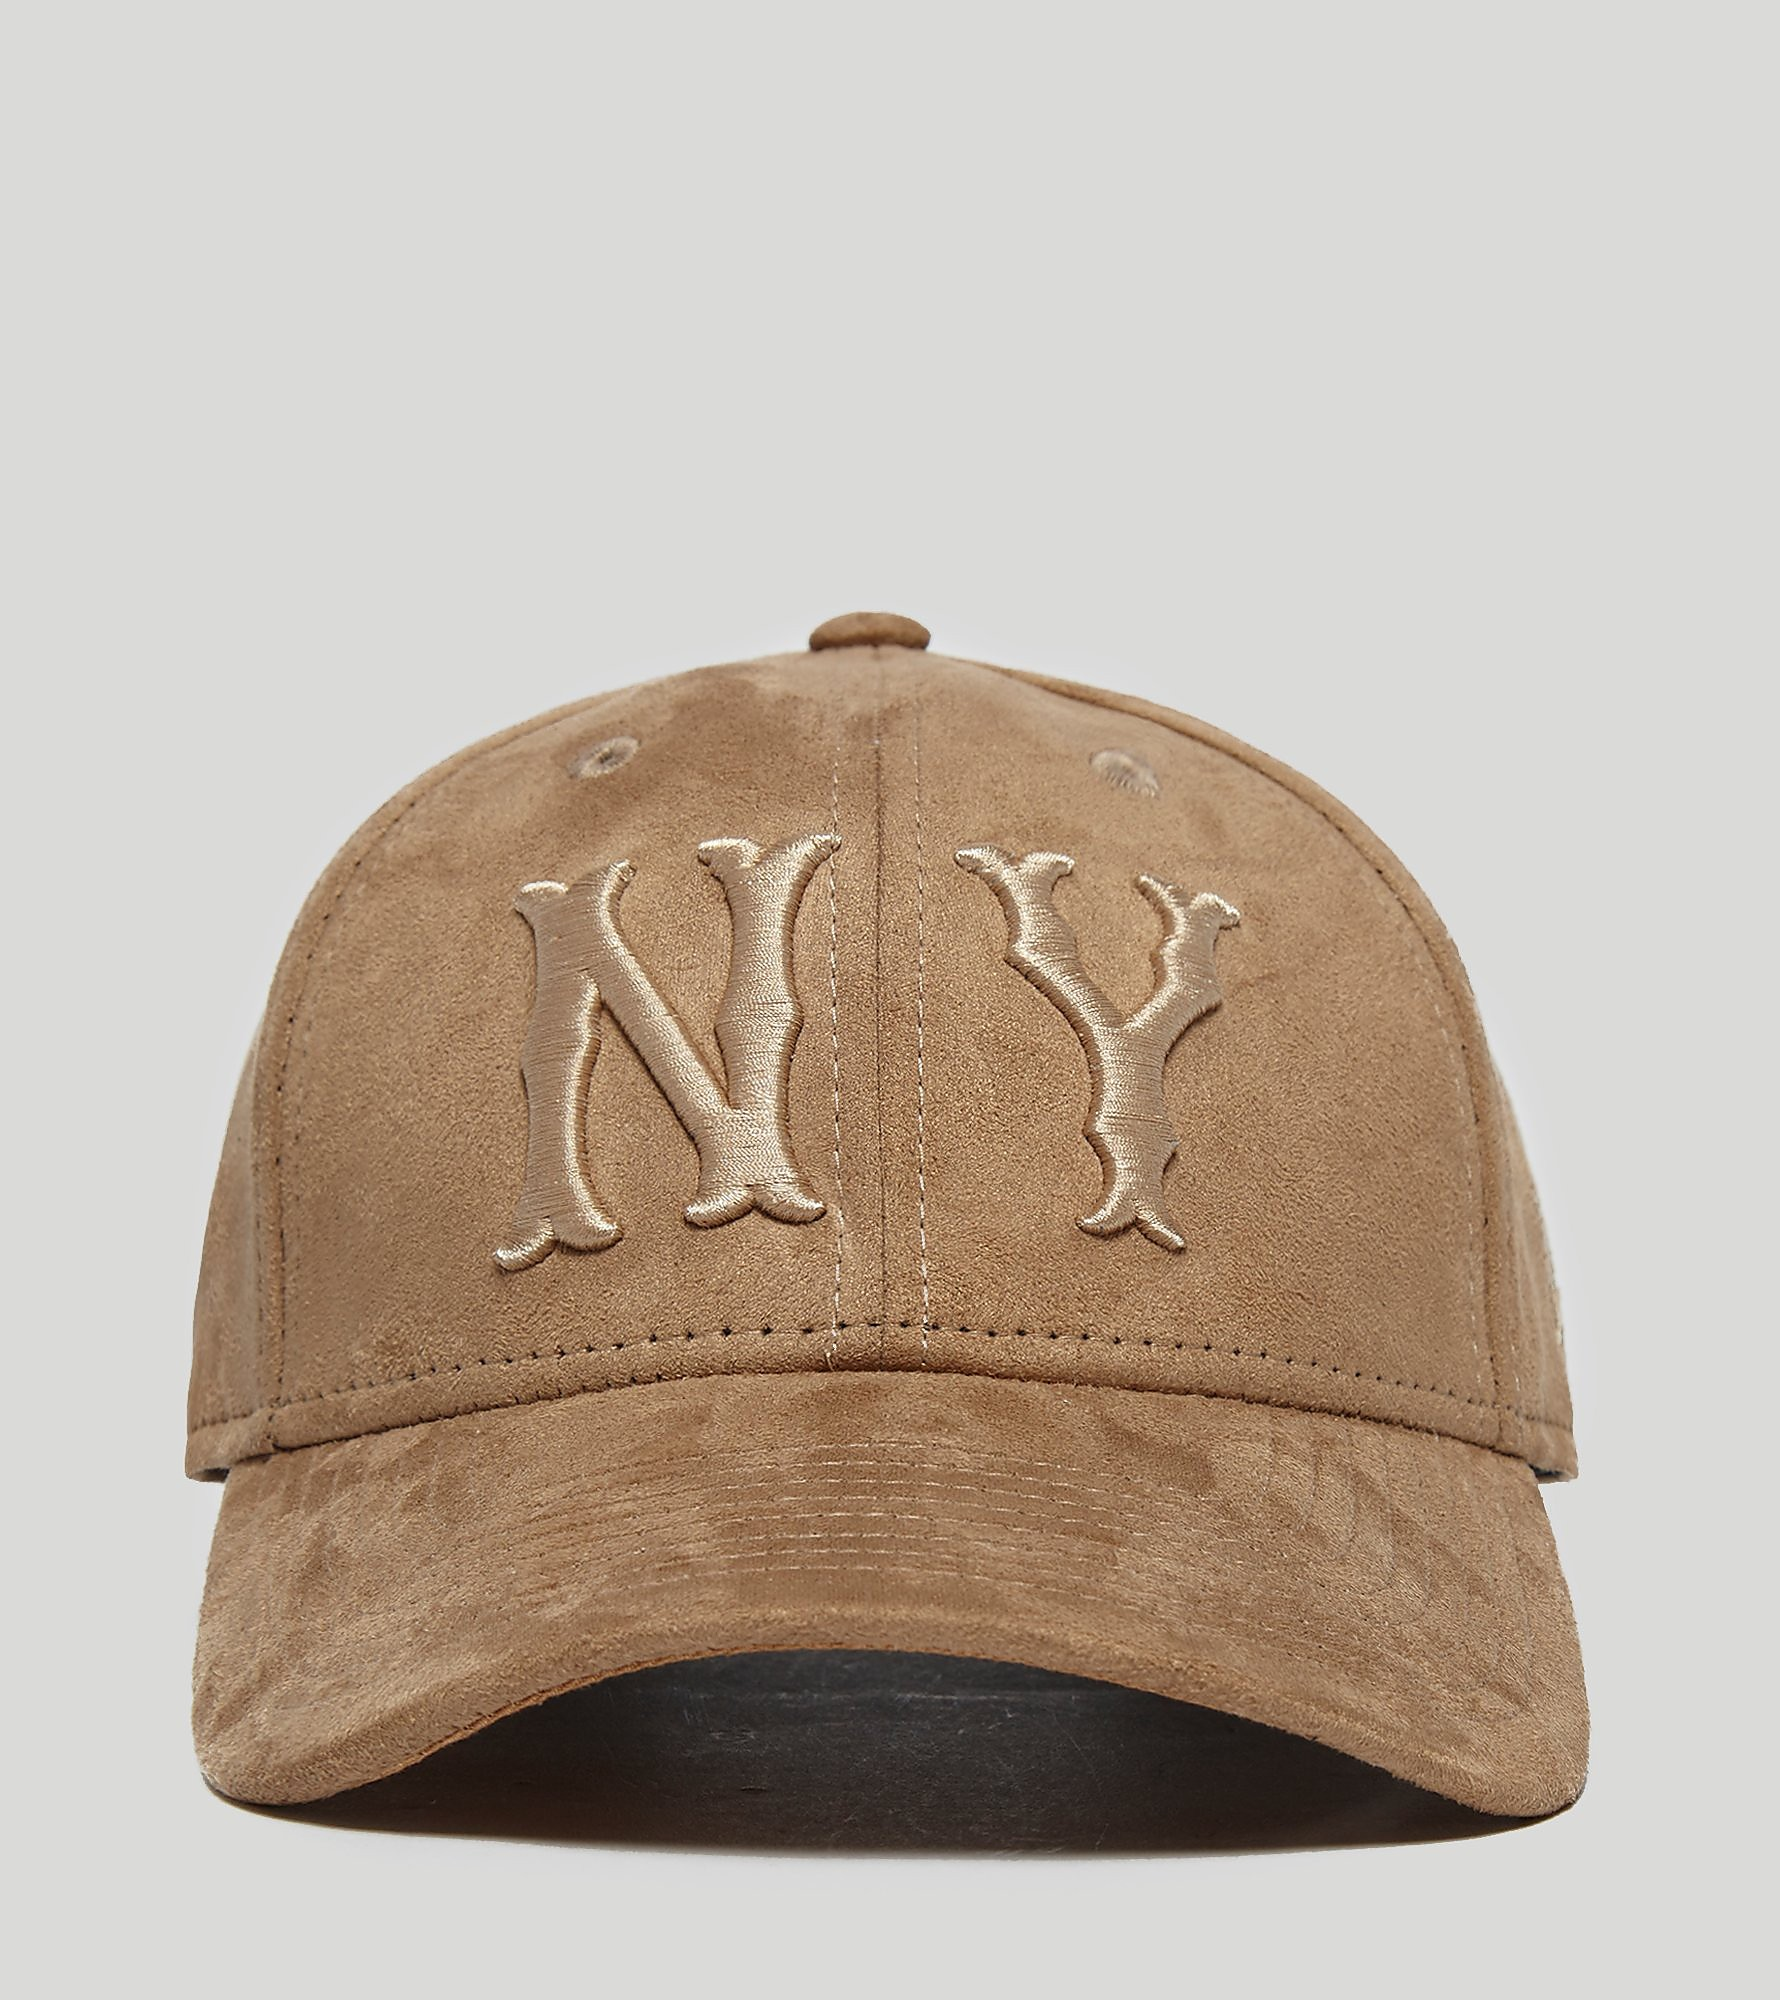 New Era 9FORTY Tone Suede Cap - size? Exclusive